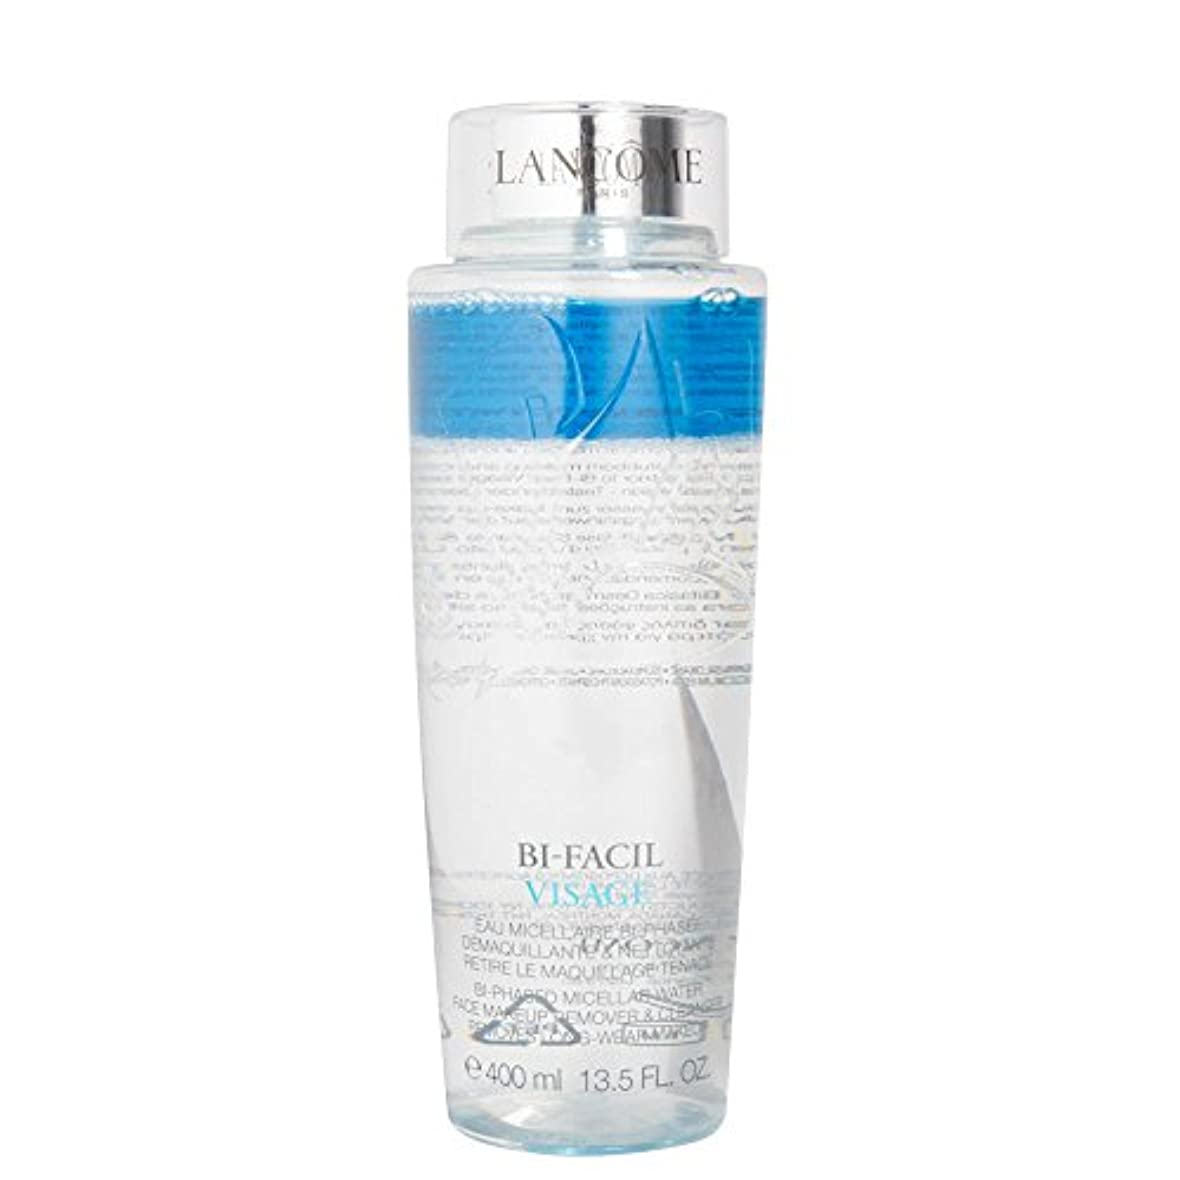 お酢仮称二度ランコム Bi Facil Visage Bi-Phased Micellar Water Face Makeup Remover & Cleanser 400ml/13.5oz並行輸入品